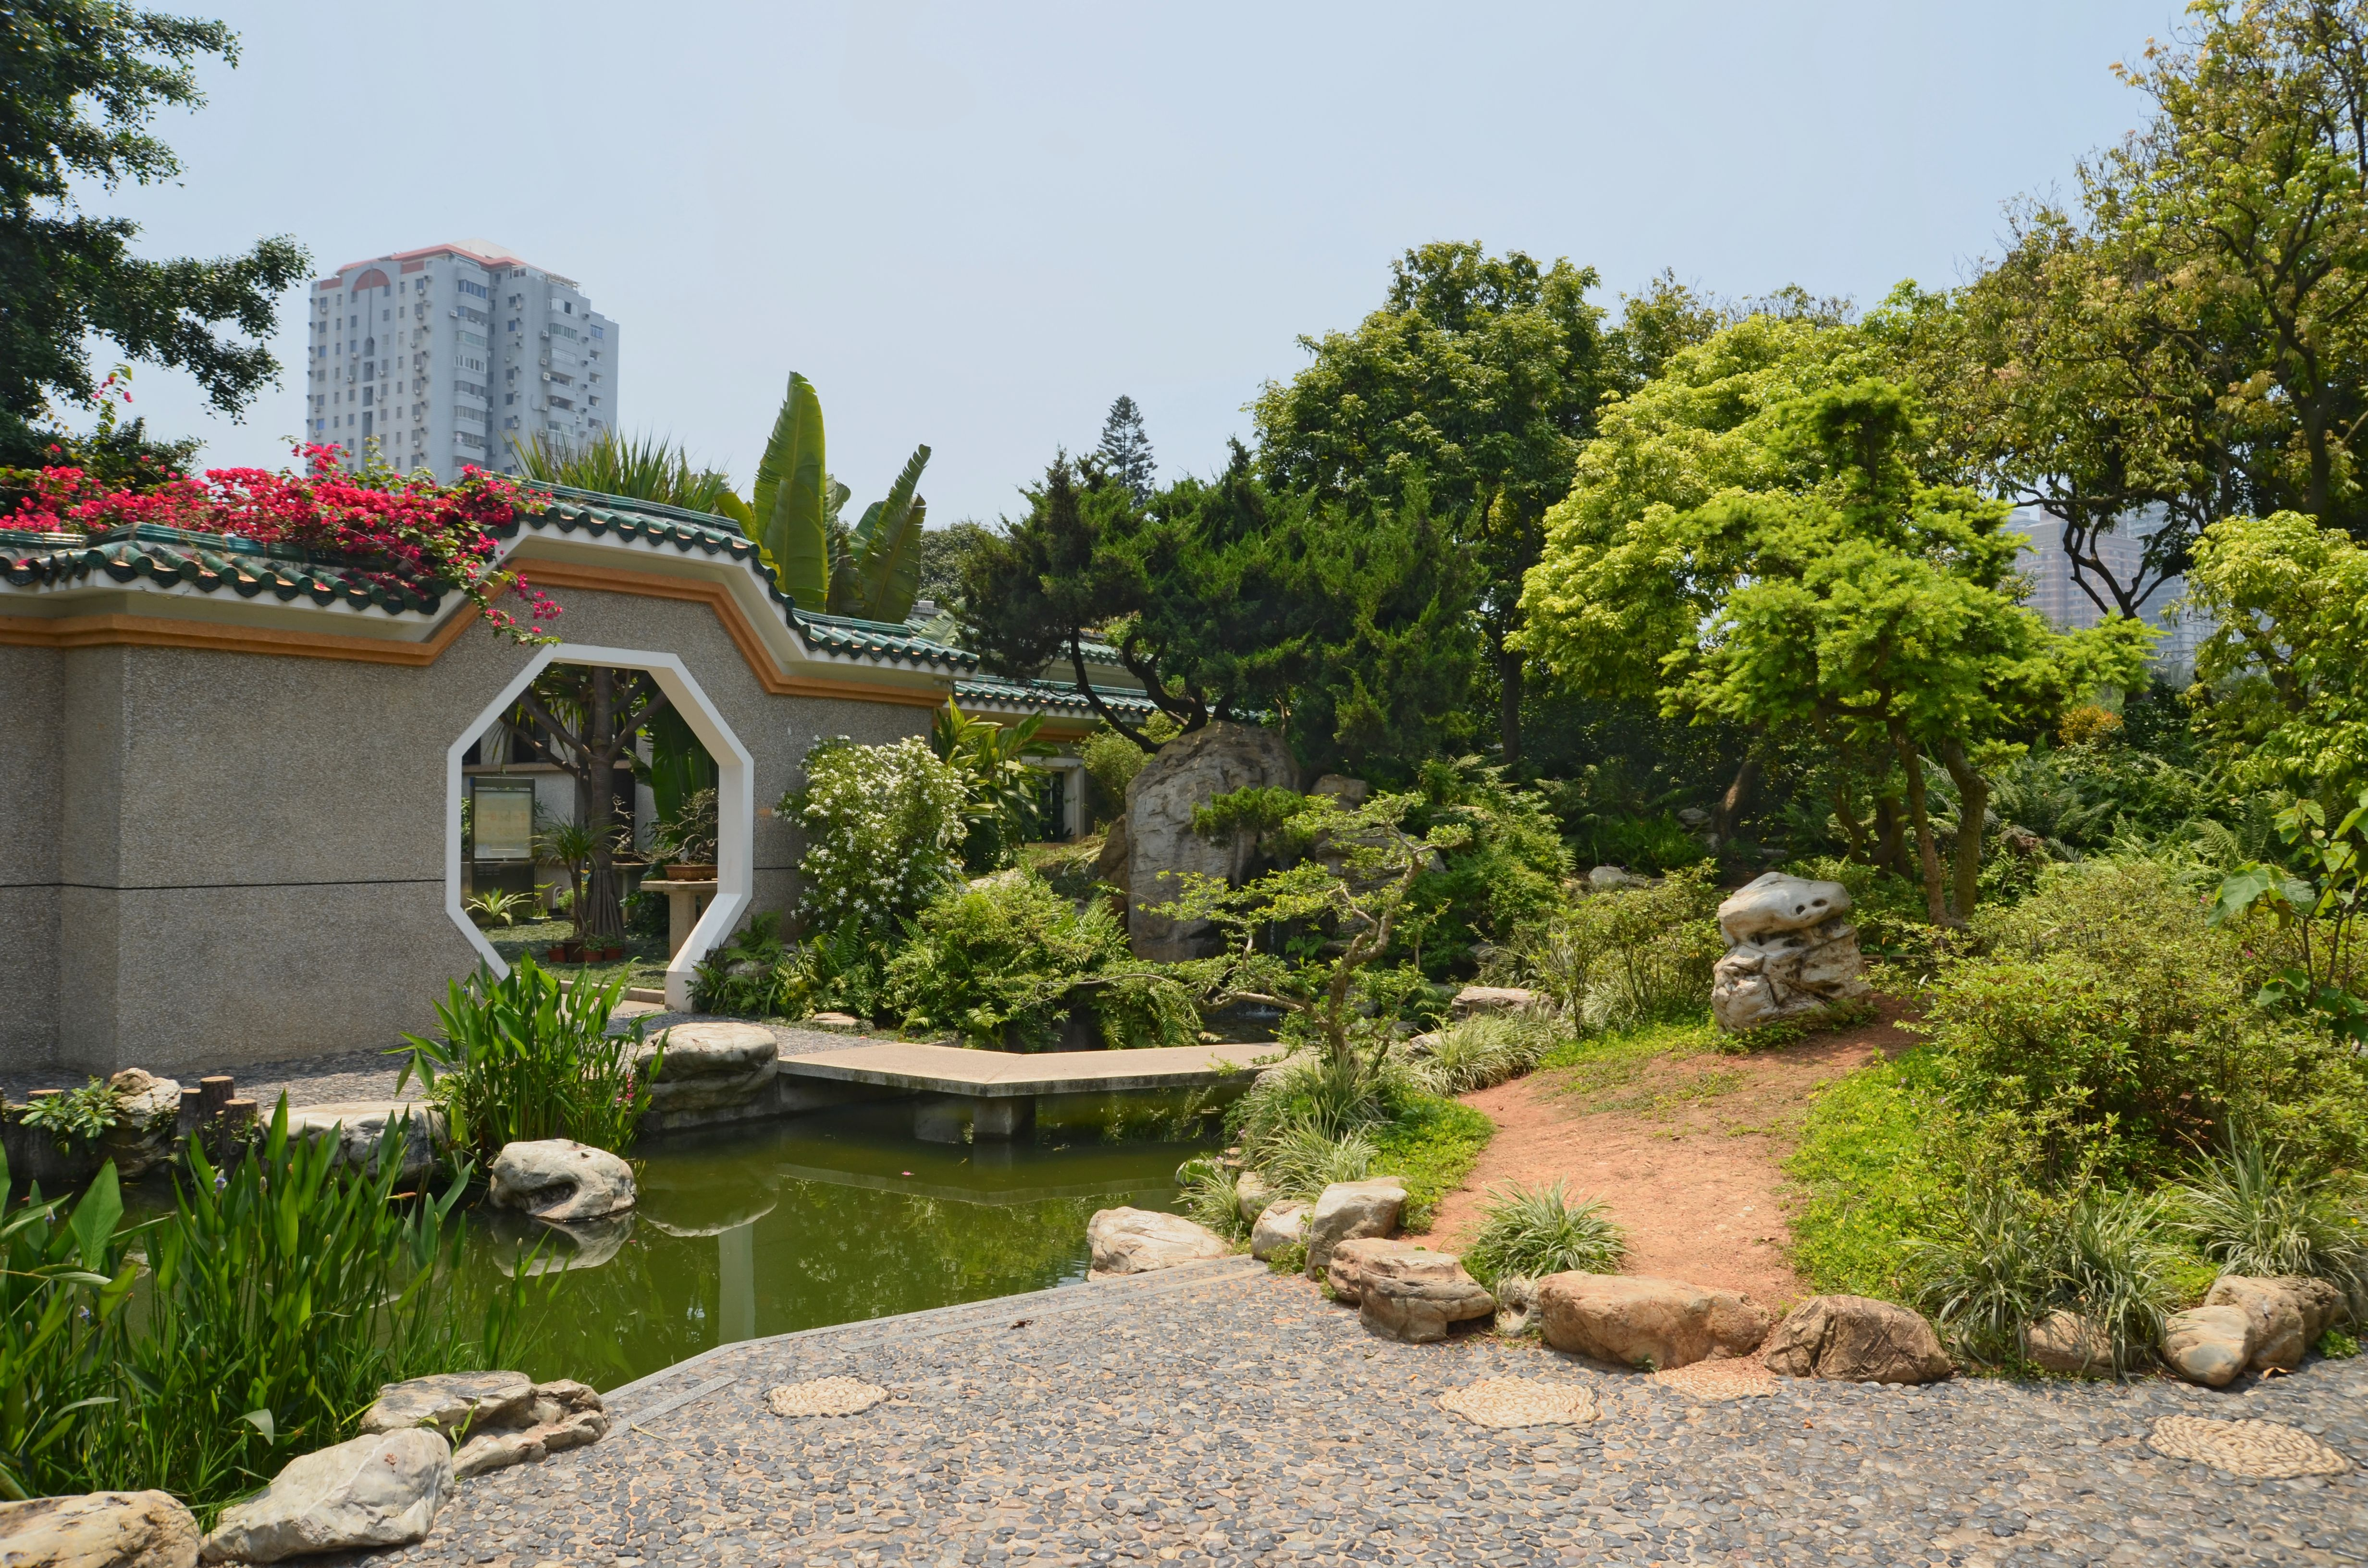 http://upload.wikimedia.org/wikipedia/commons/e/ed/Xiamen-Zhongshan_gongyuan_jardin_traditionnel.jpg